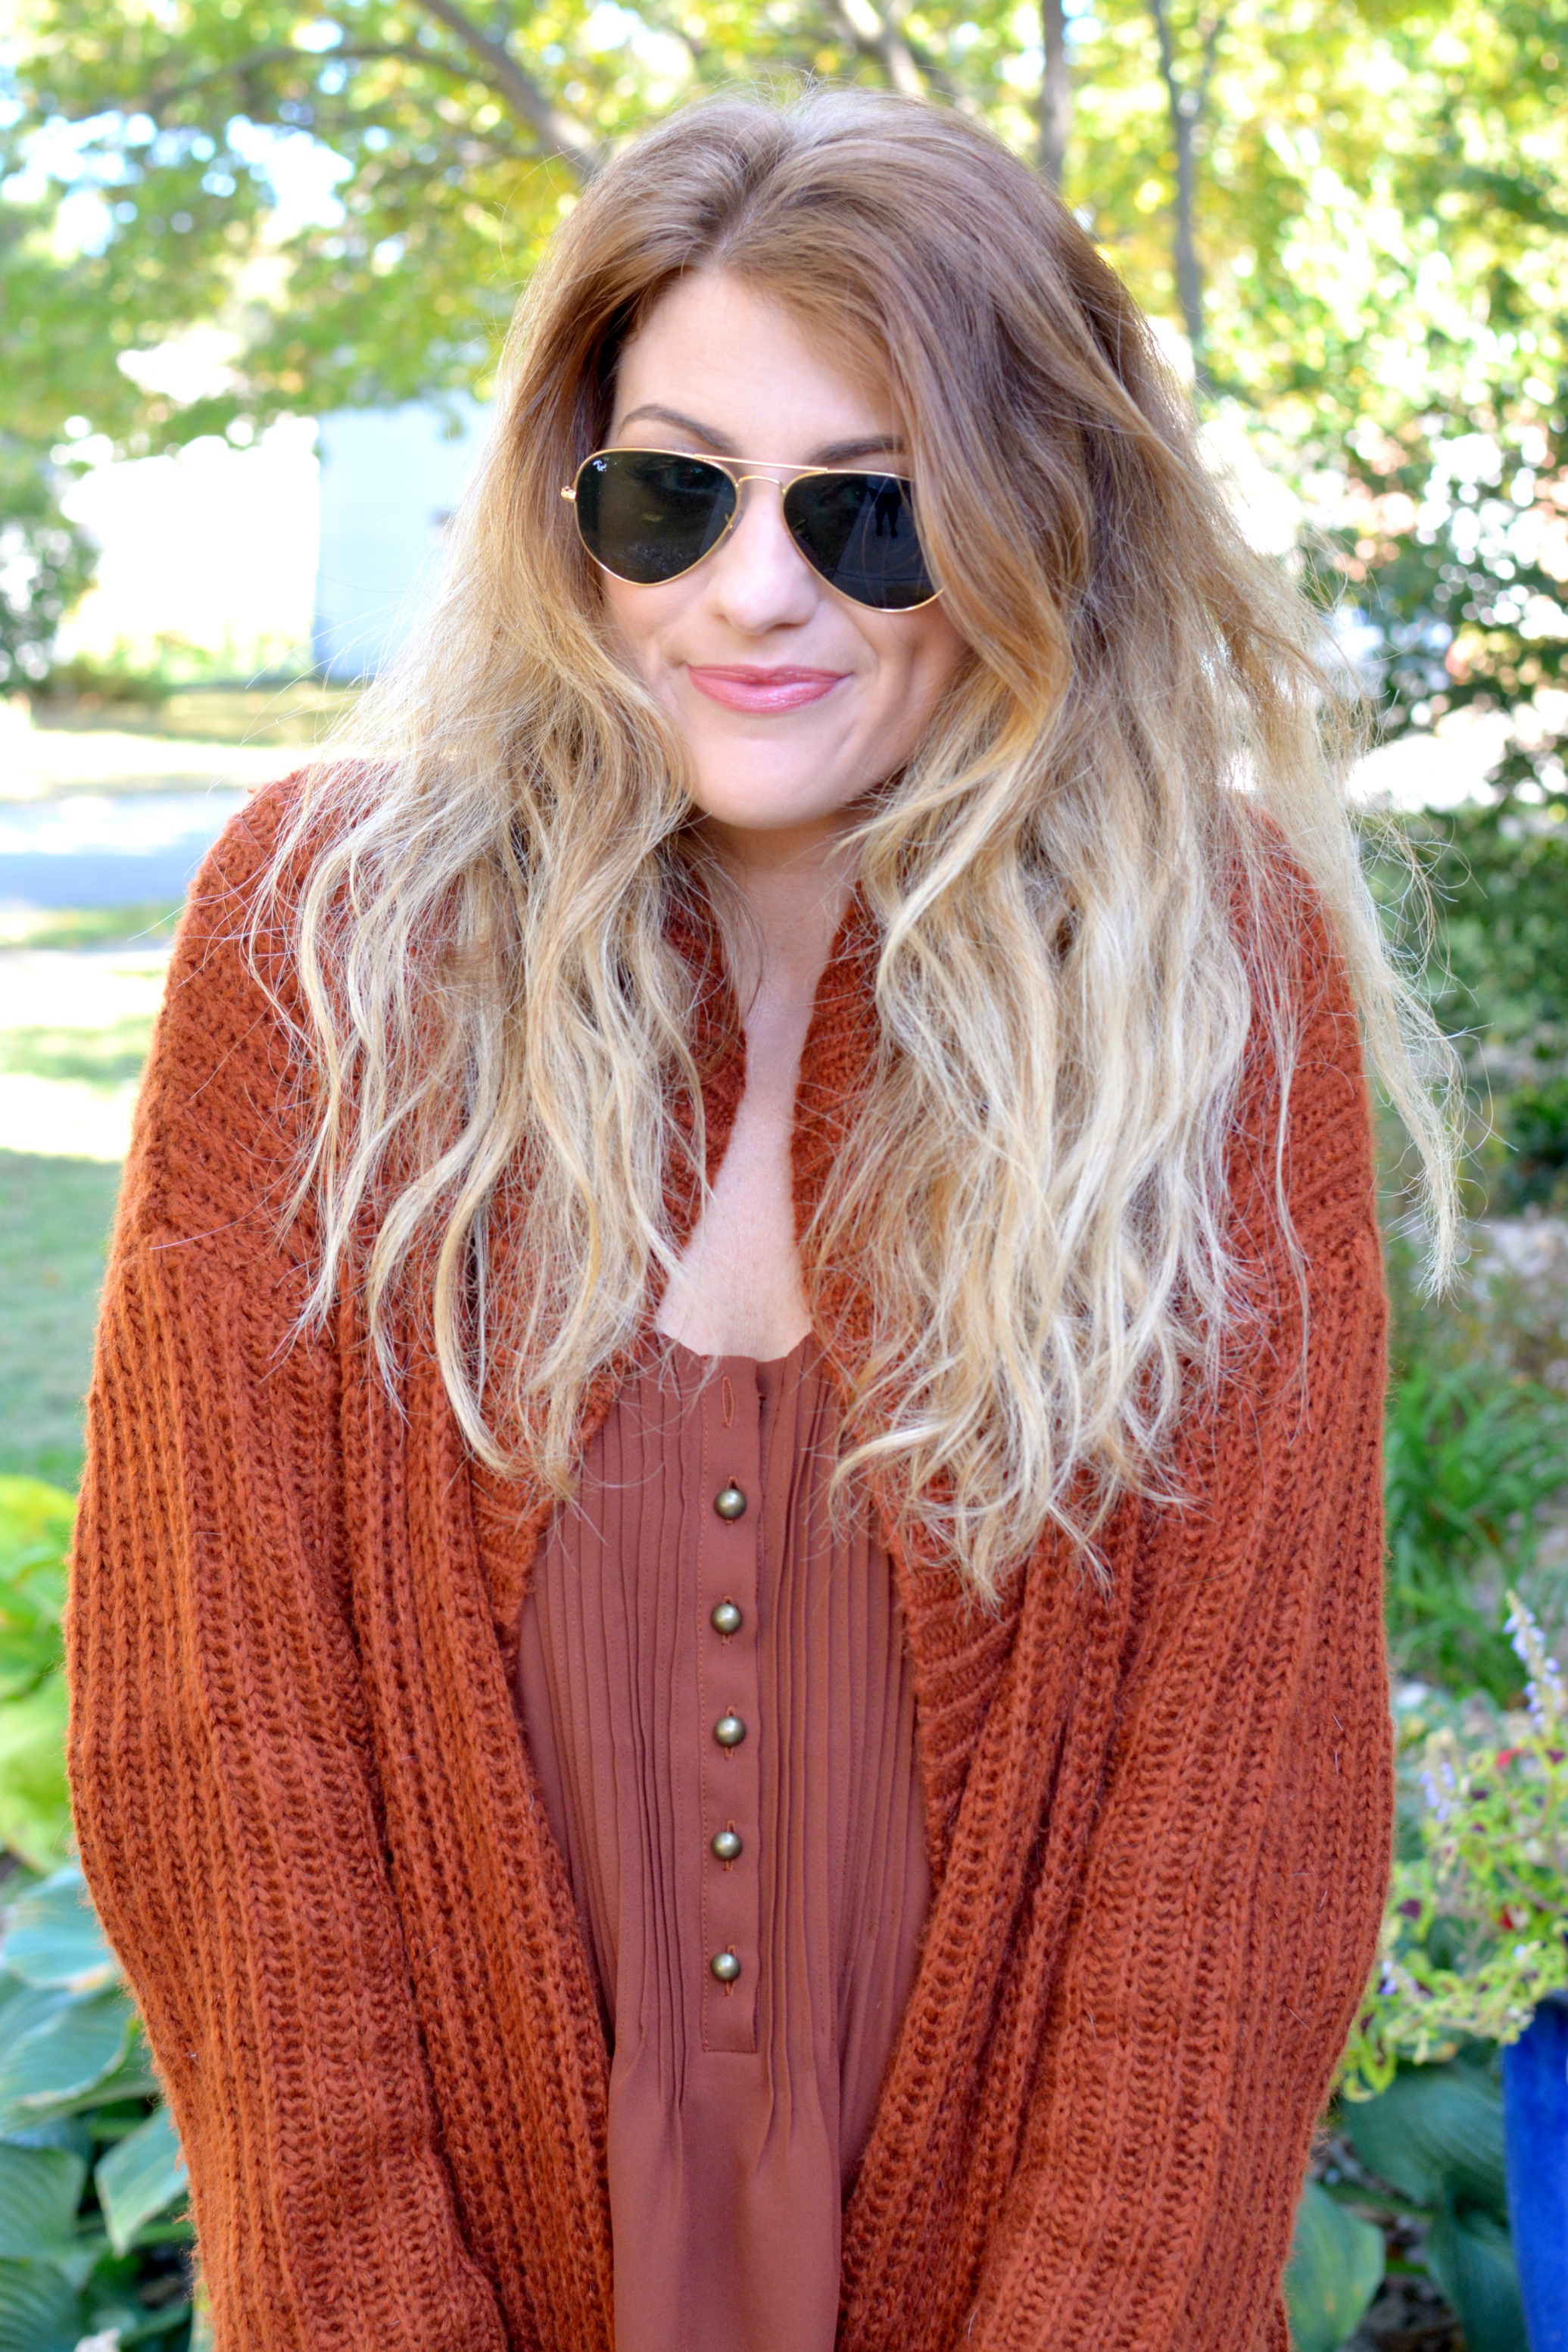 Ashley from LSR in a rust camisole and rust cardigan